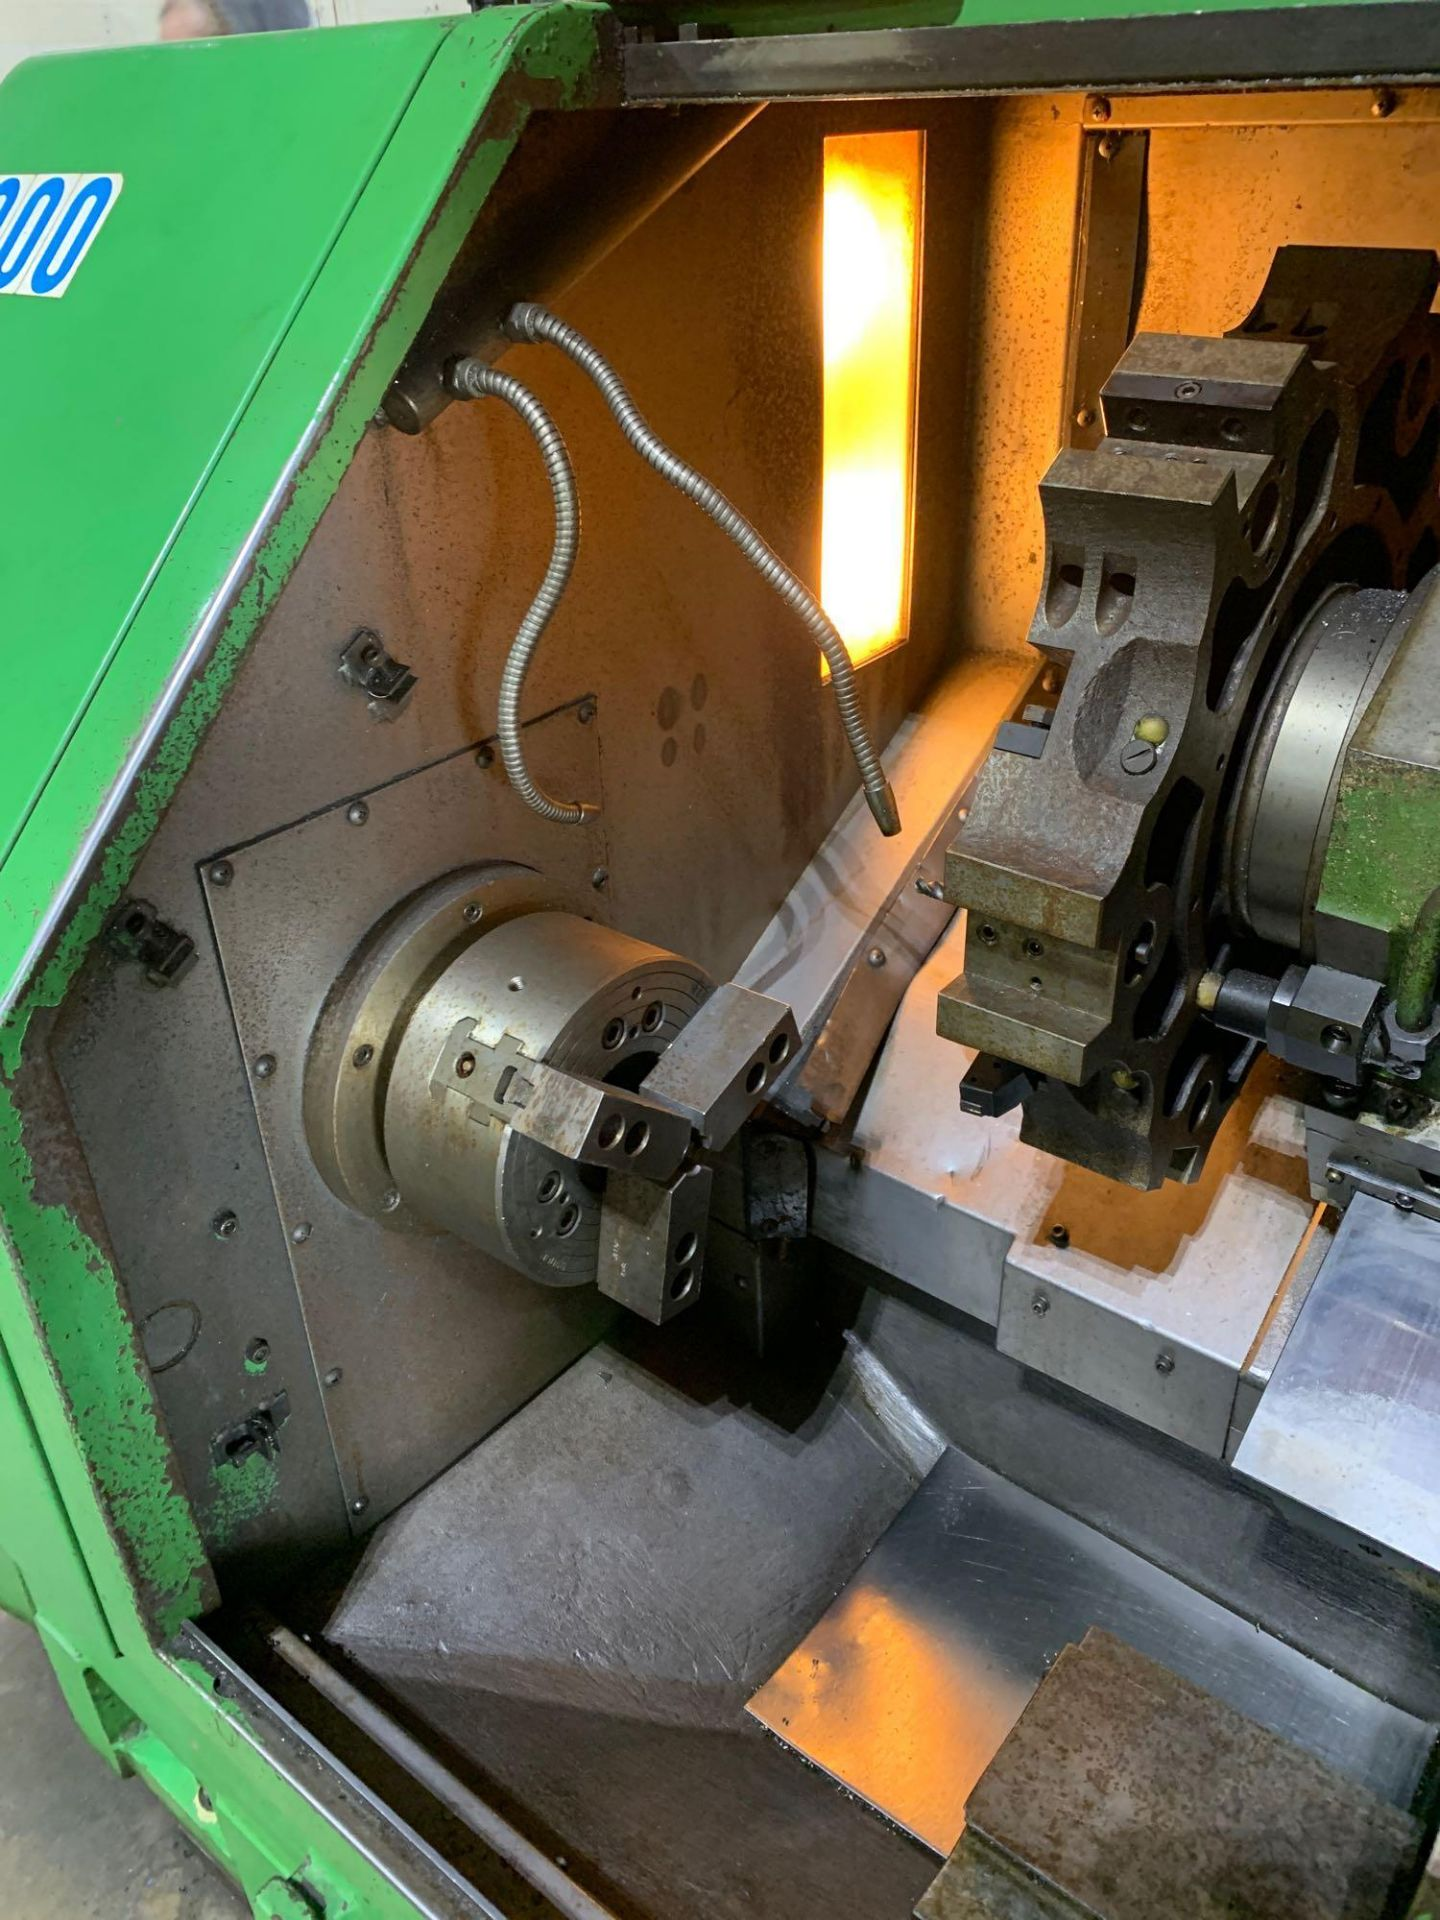 IKEGAI AX-15Z CNC Slant Bed Turning Center Serial Number: 50130V 2-Axis Machine Fanuc 10T Control 12 - Image 10 of 18